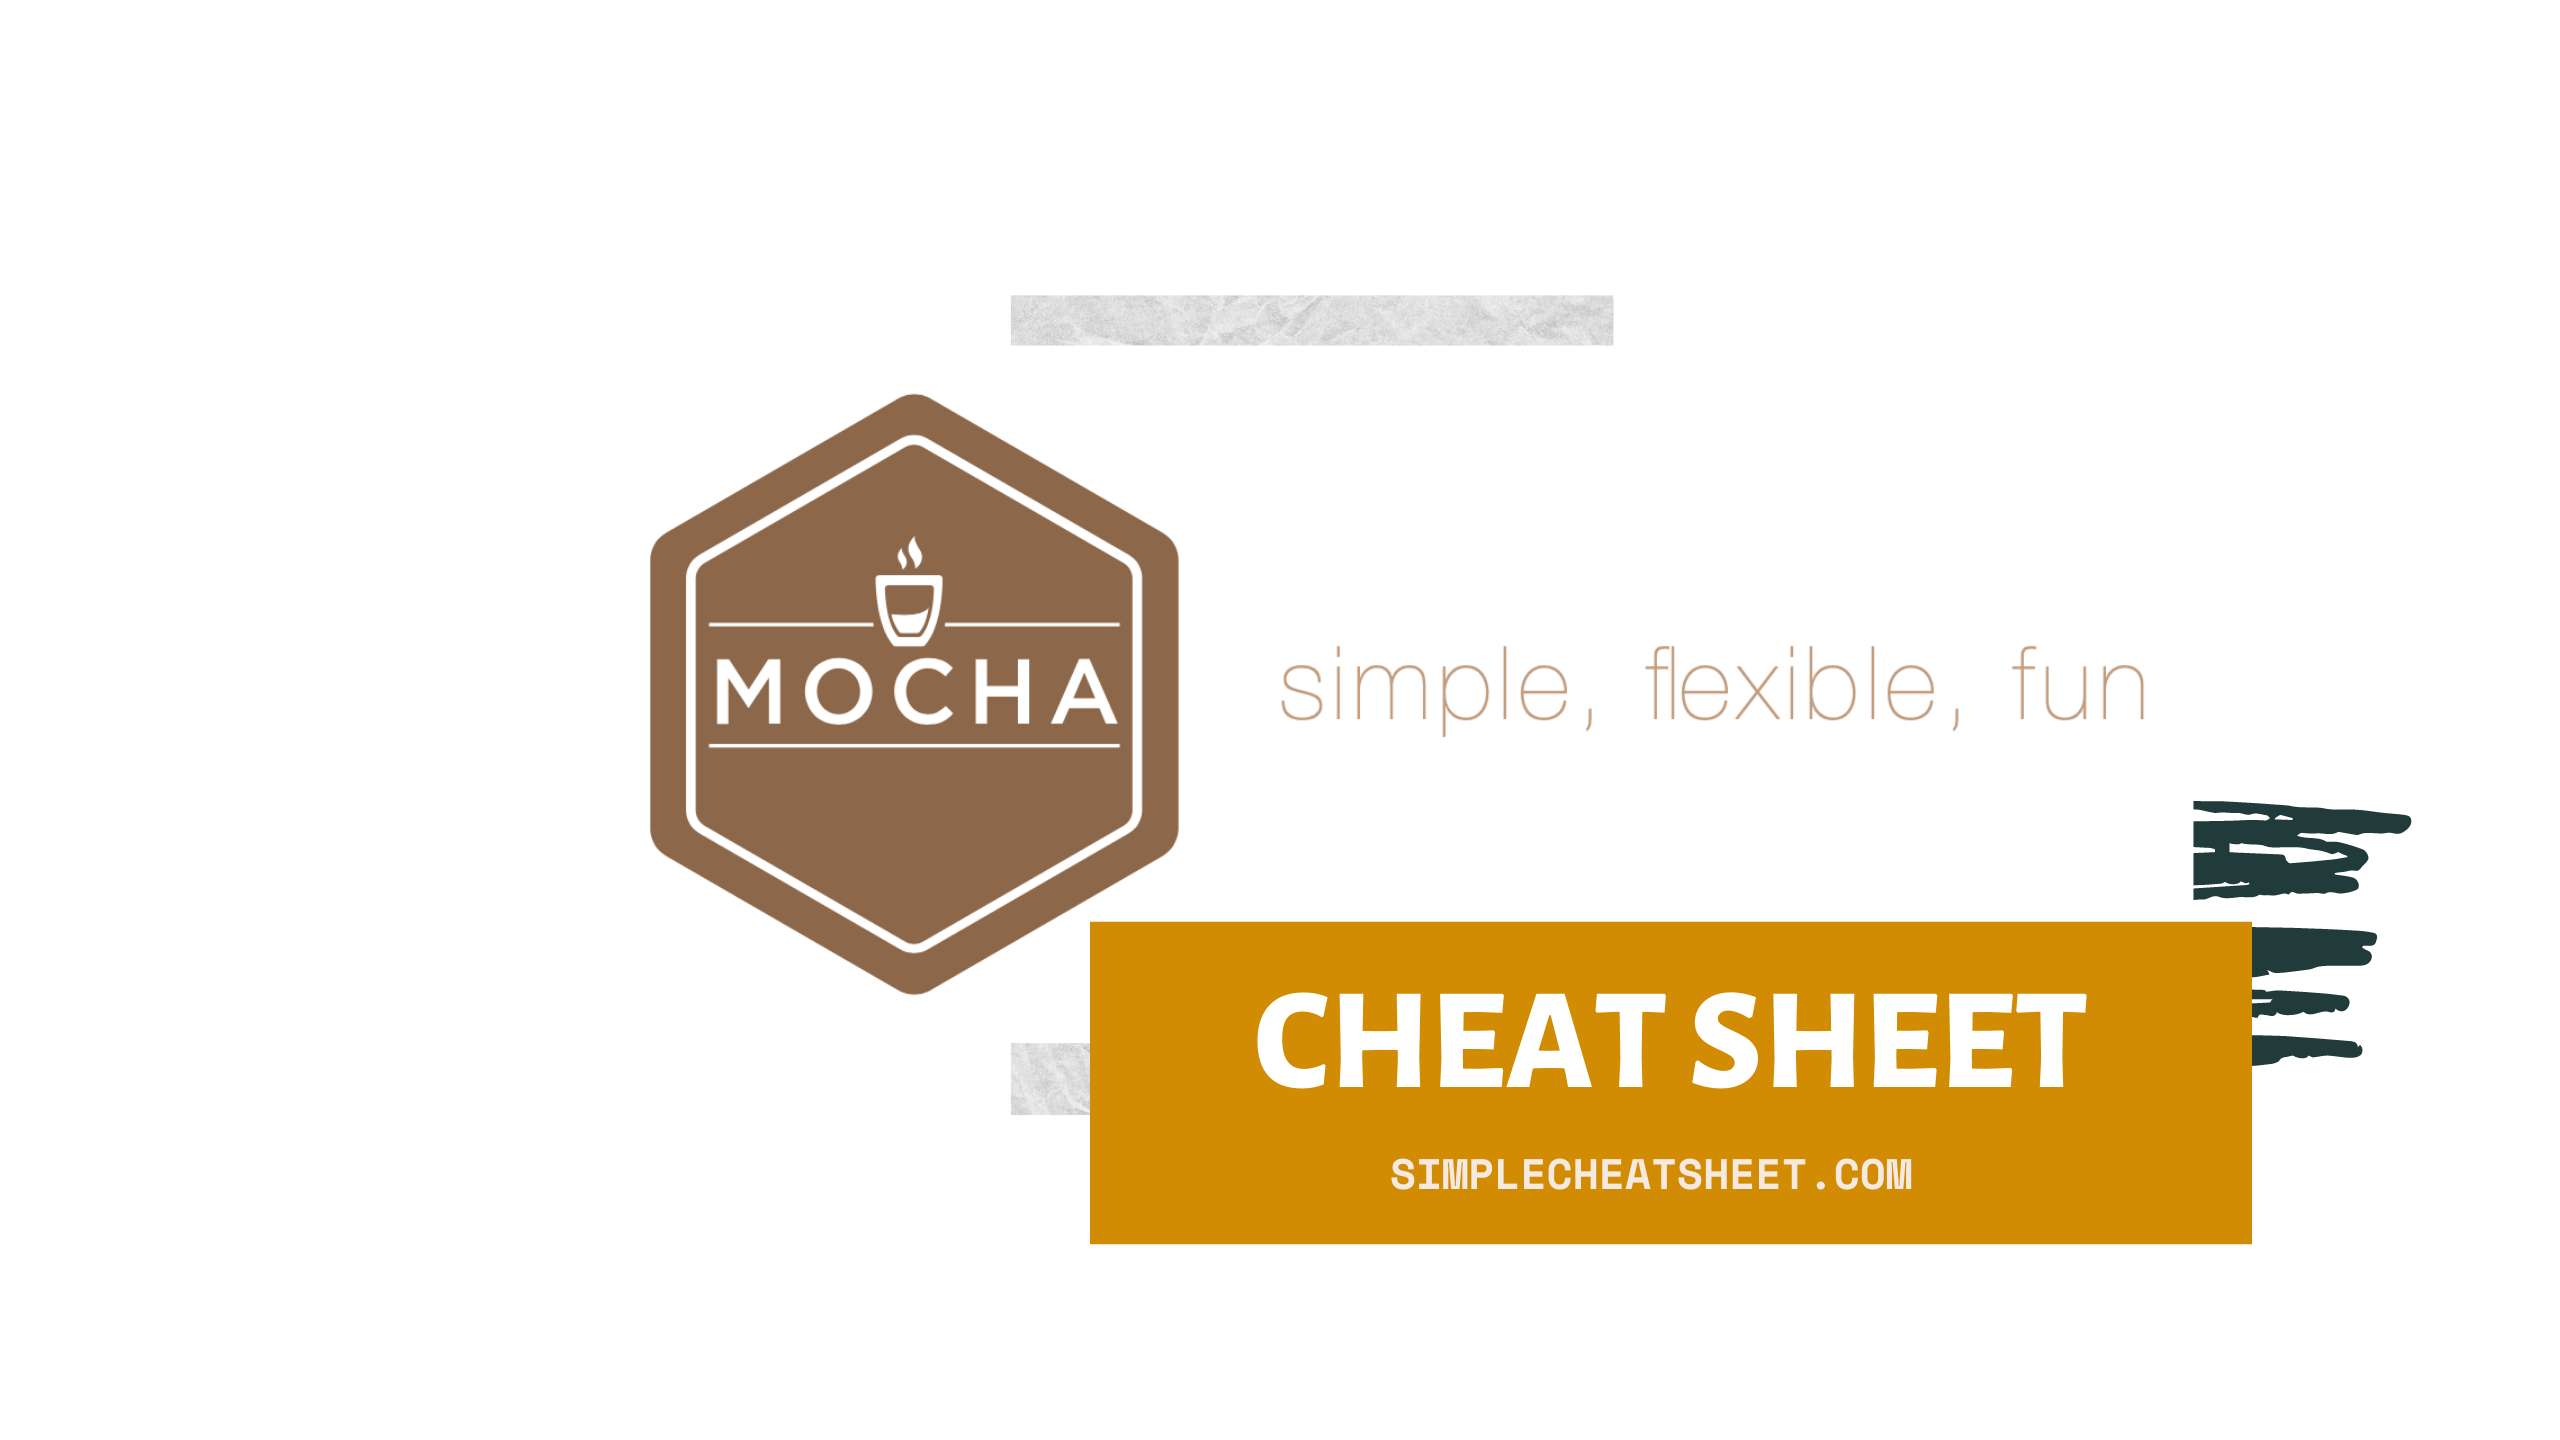 Mocha cheat sheet